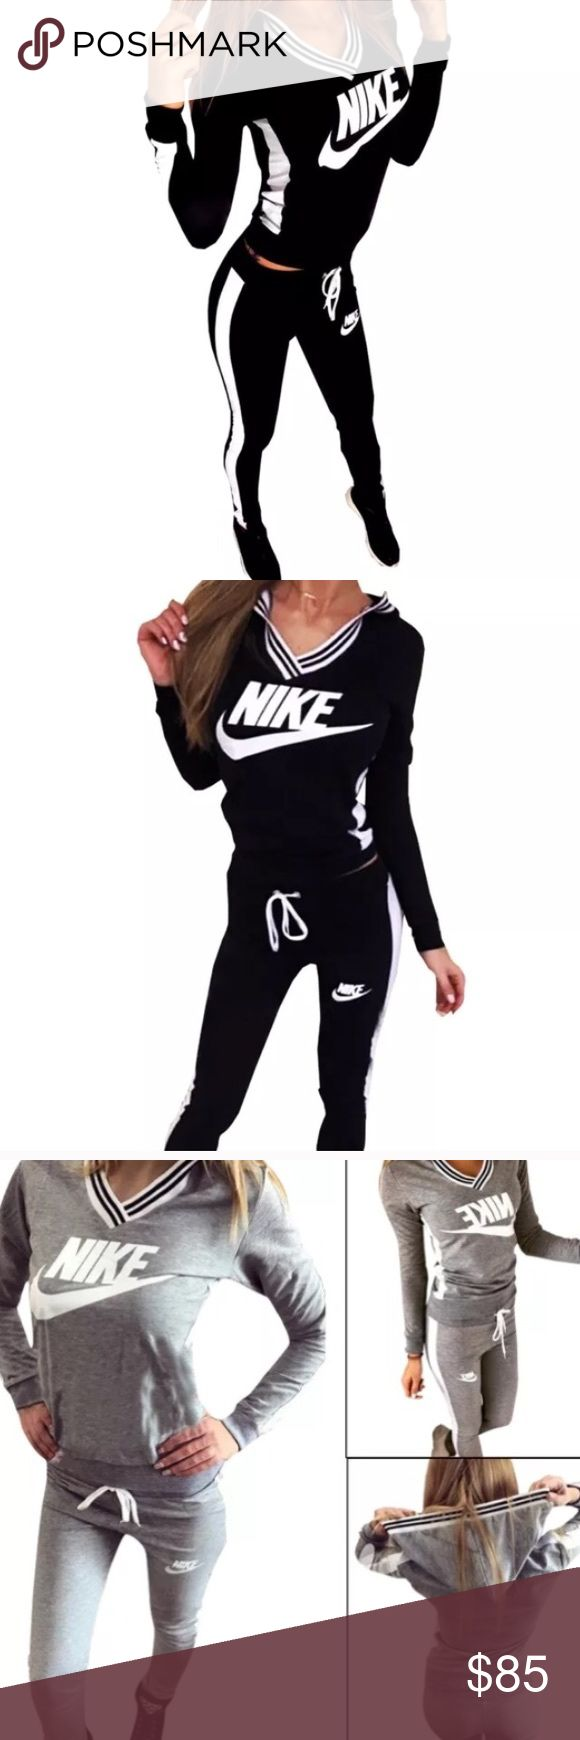 NIKE Sweat suit jogger pants and hoodie Nike athletic set. Black jogger pants size small. And black hoodie size small. New without the tags. Perfect condition Nike Tops Sweatshirts & Hoodies